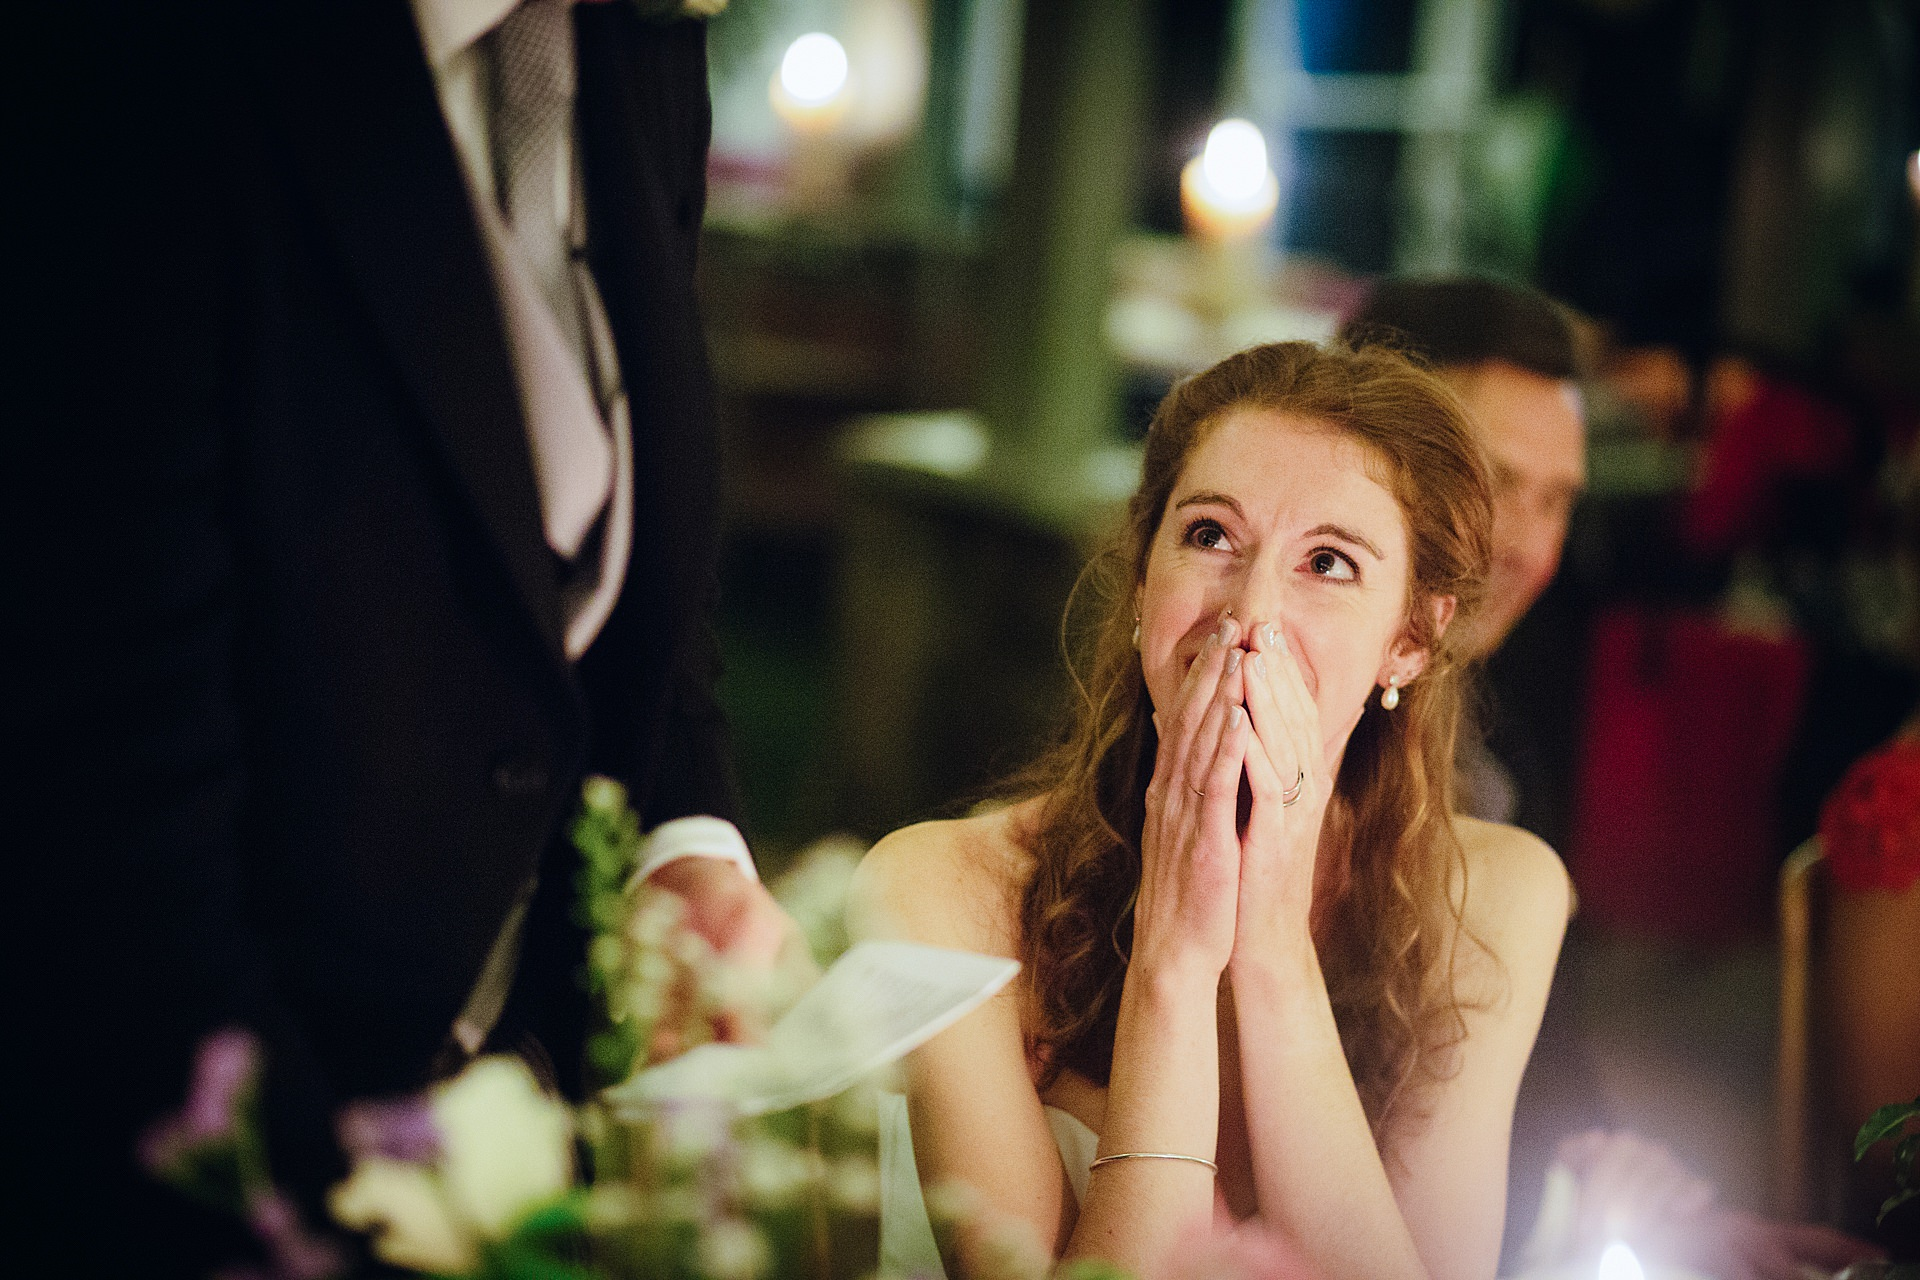 Bride looks lovingly at her groom during his wedding speech